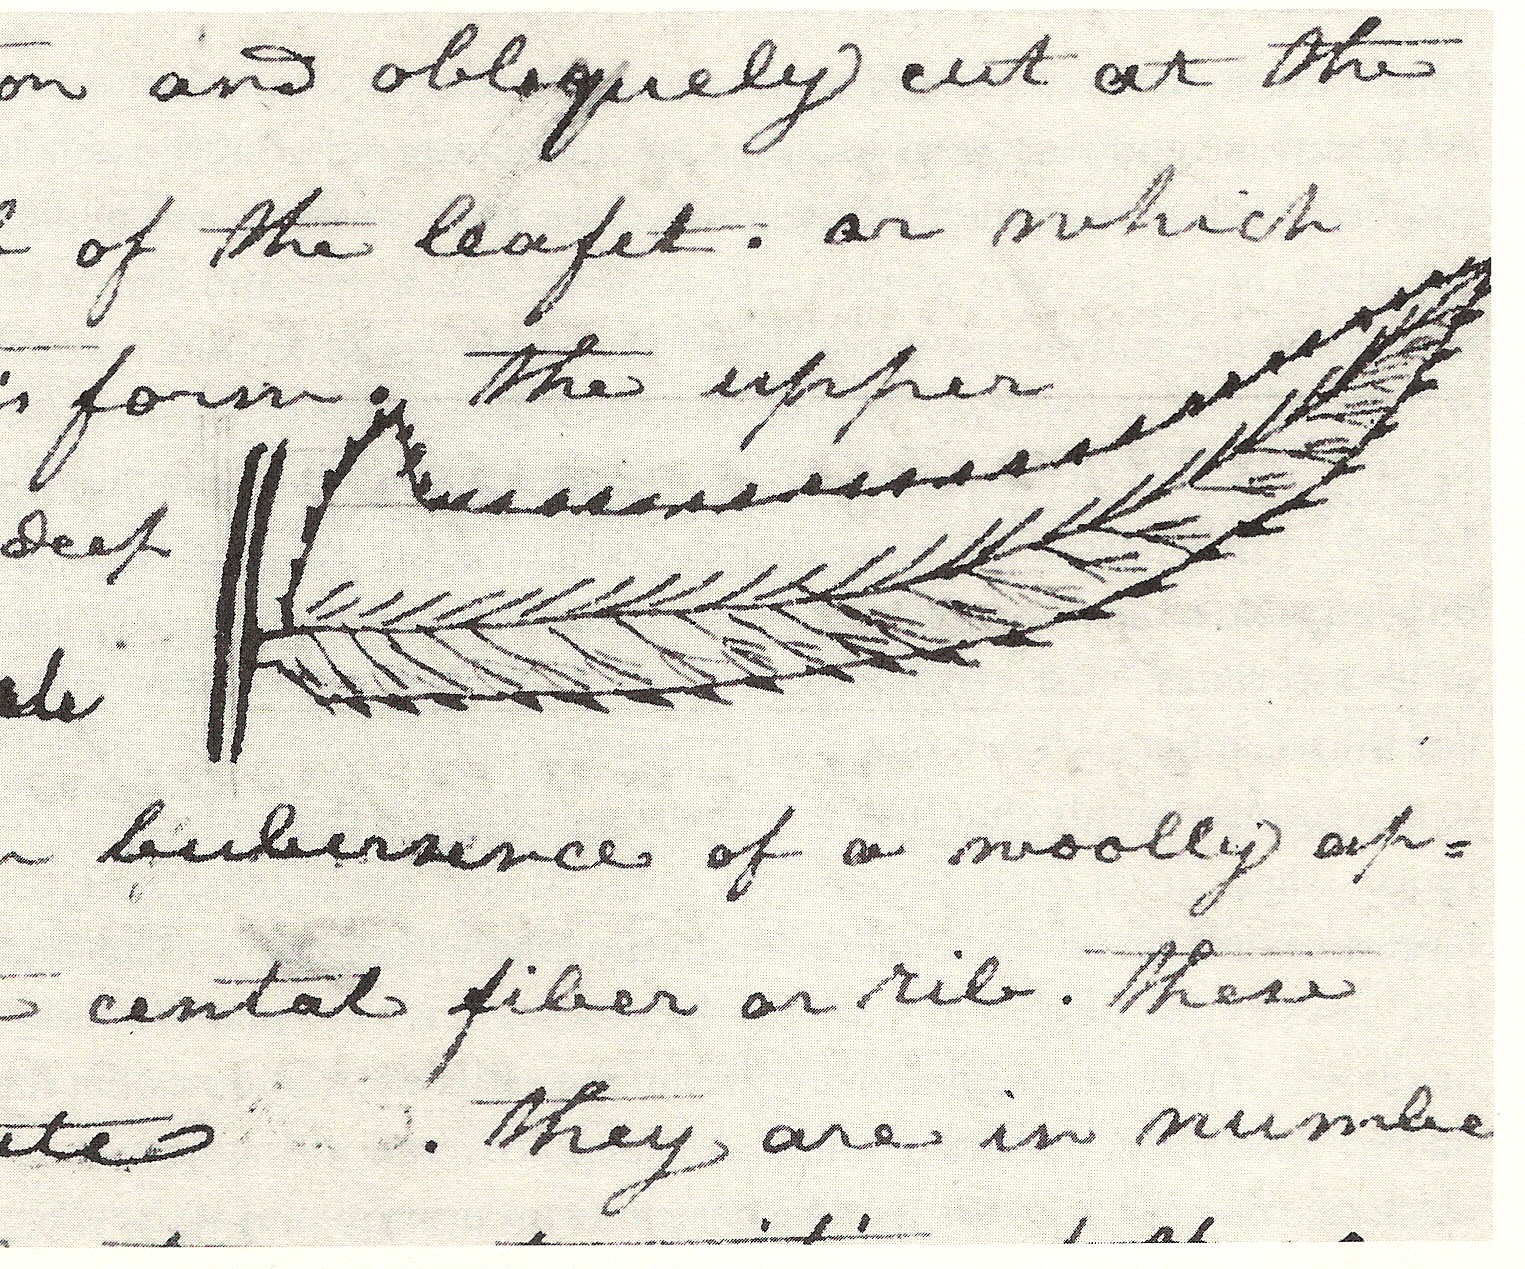 Sword fern leaf sketch from the journal of Captain Meriwether Lewis.